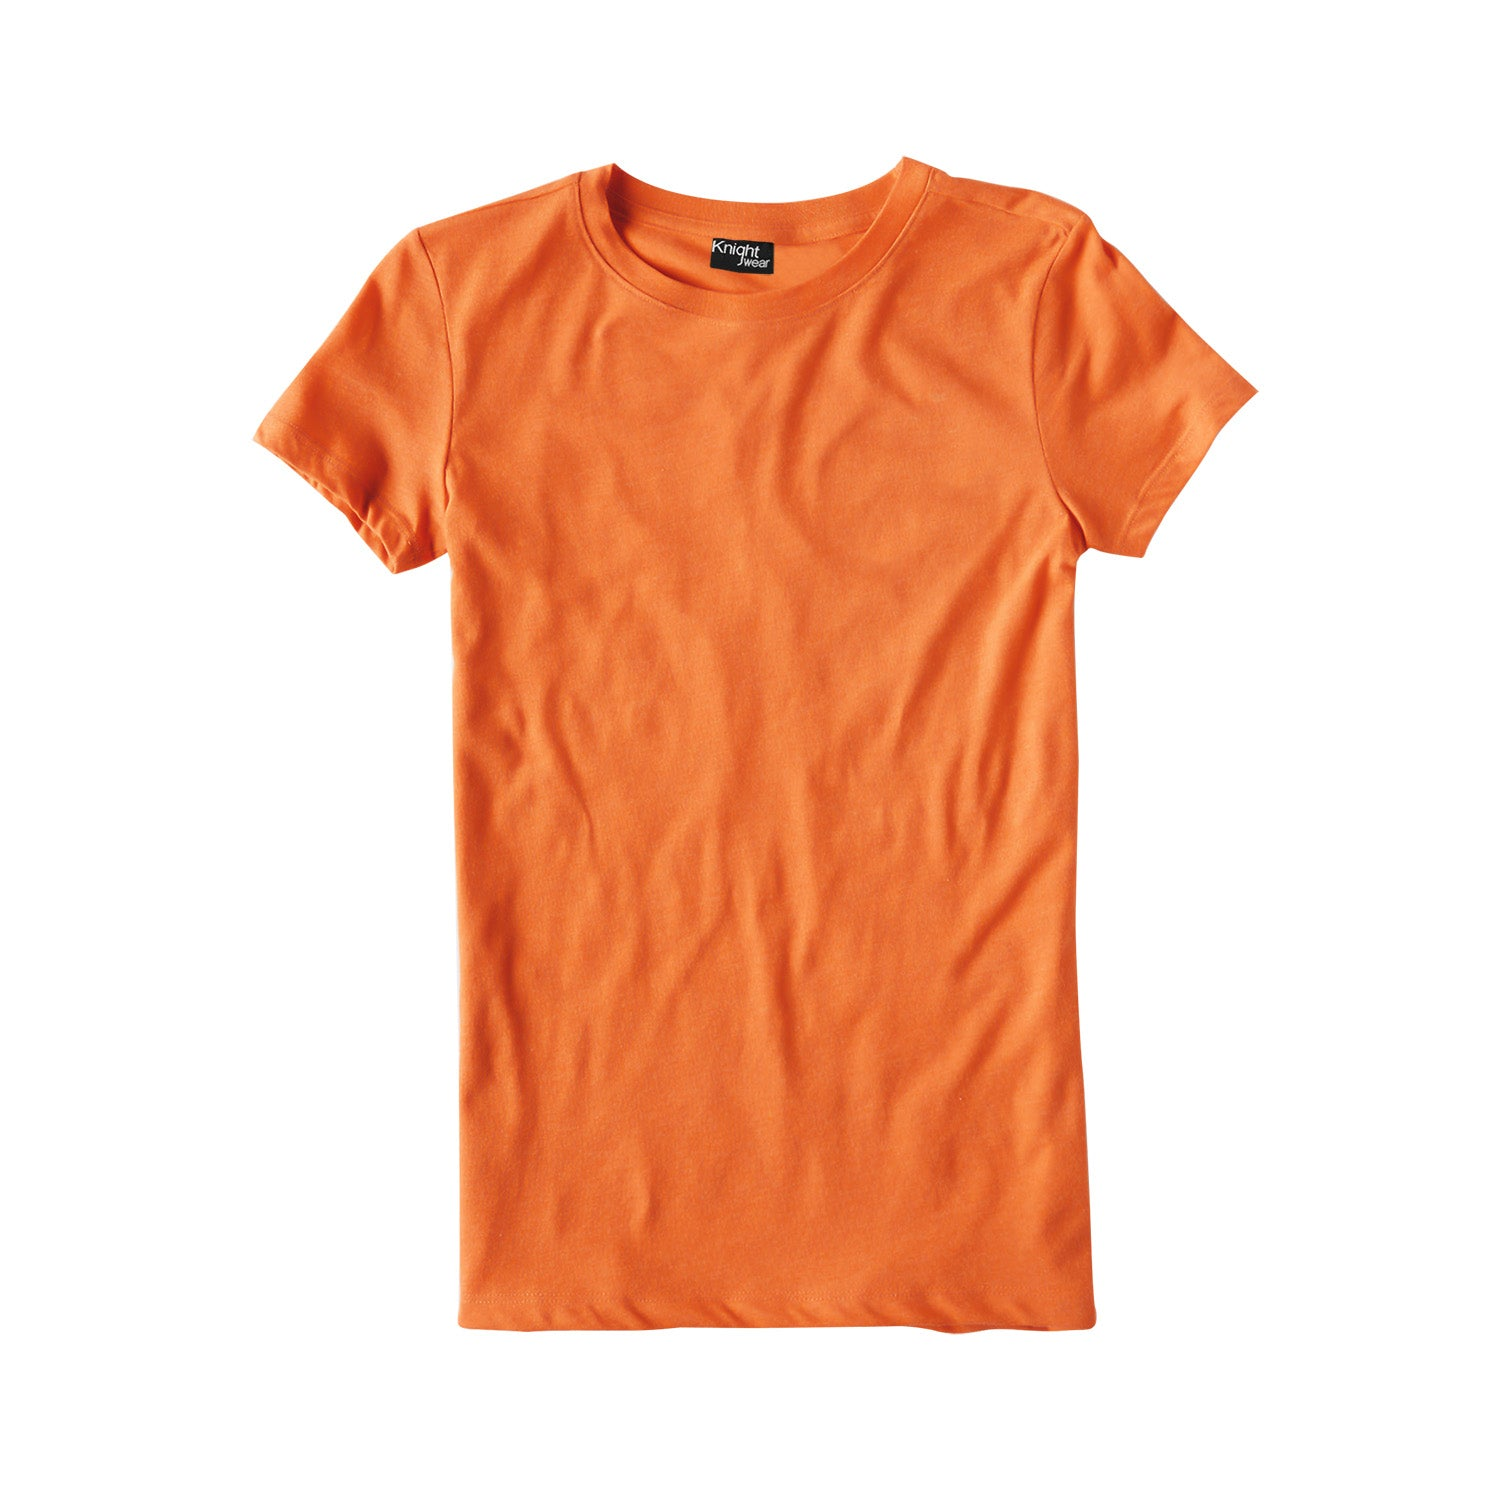 brandsego - Knight Wear Single Jersey Crew Neck Tee Shirt For Women-Orange-BE9662